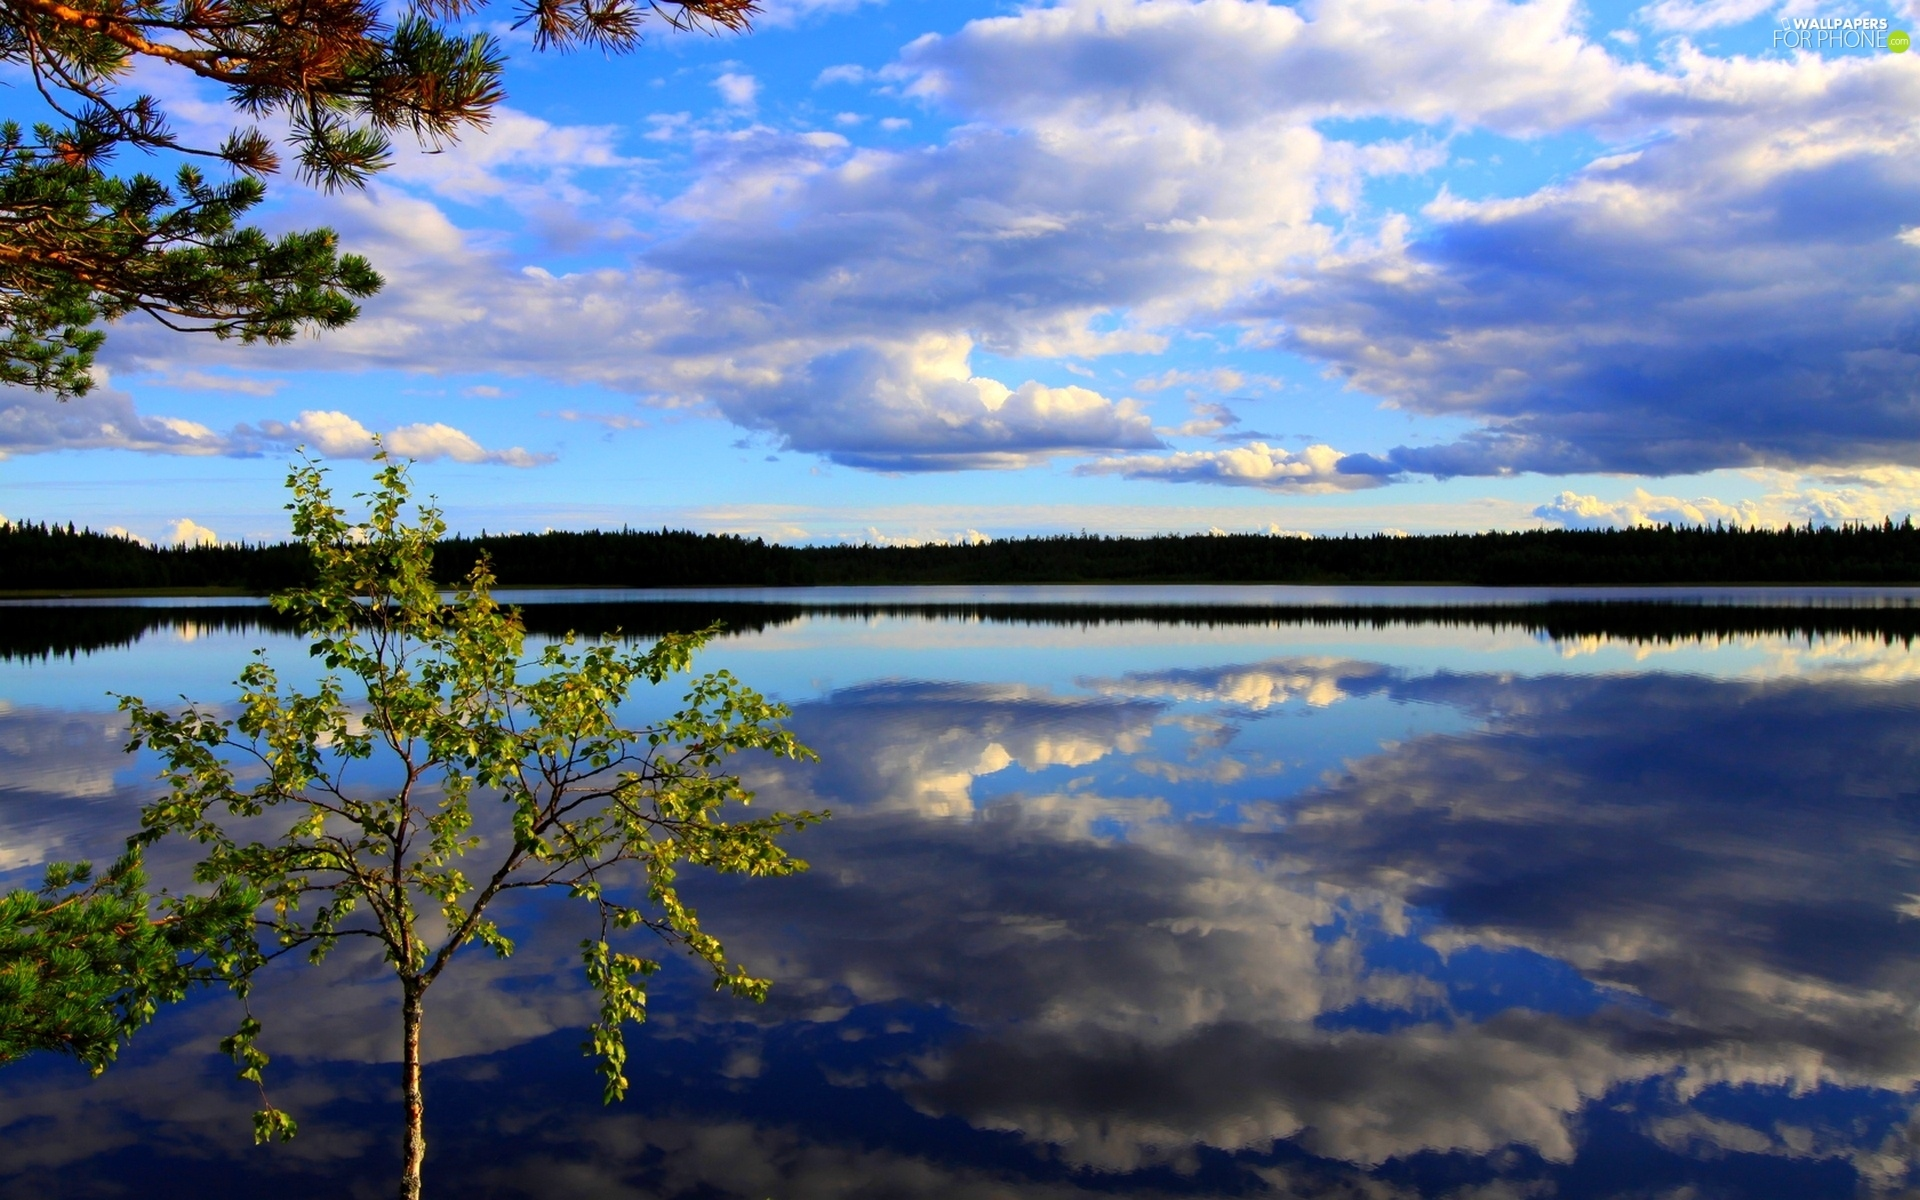 trees, Huge, clouds, reflection, viewes, lake